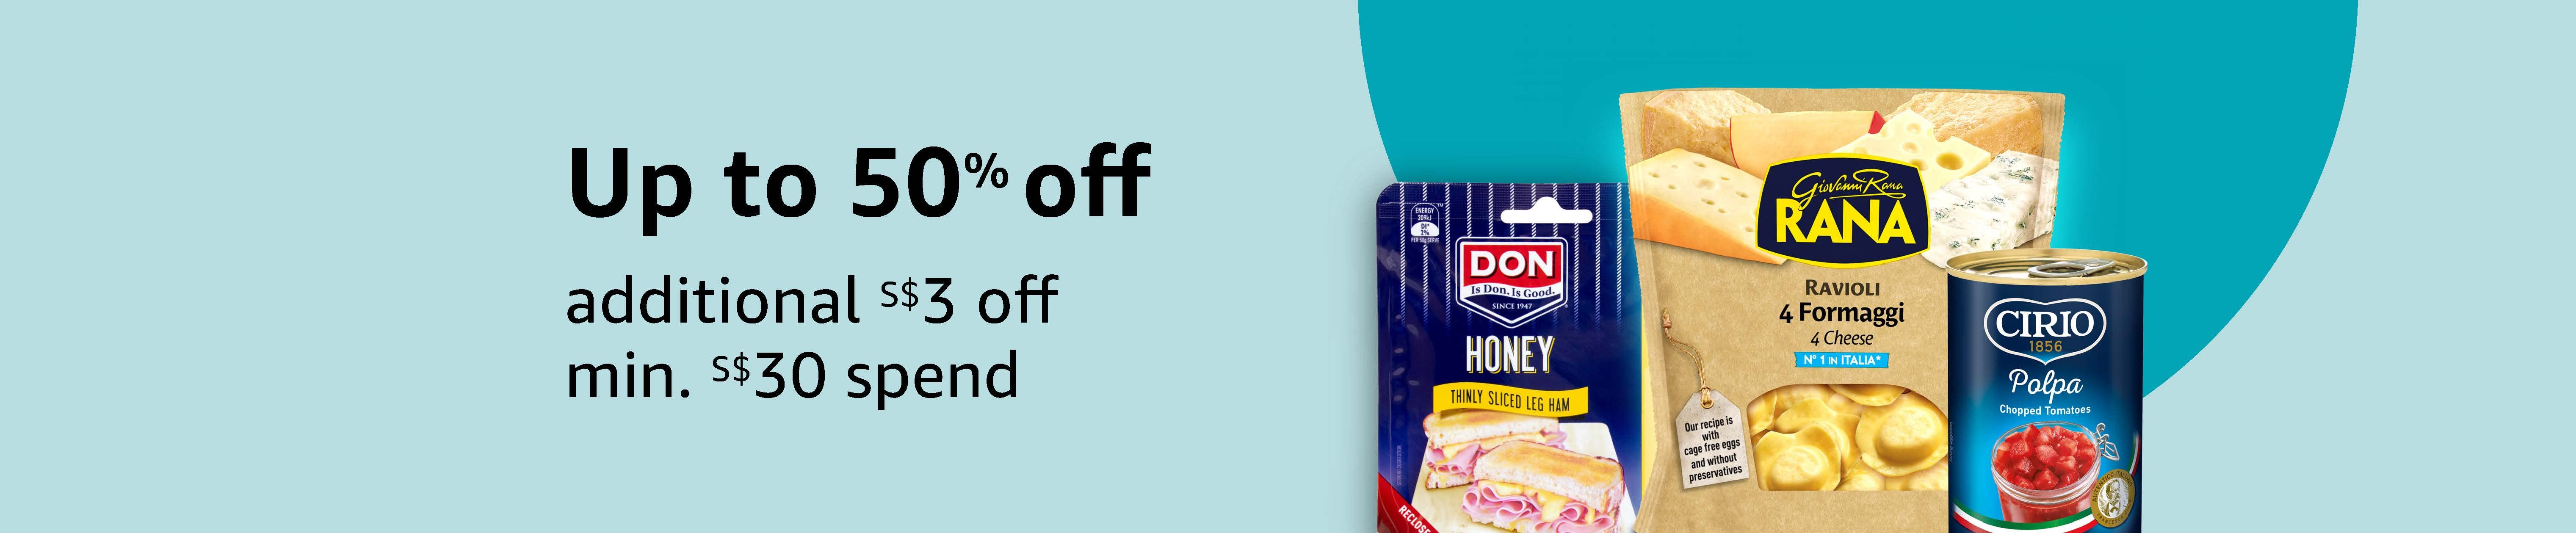 Up to 50% off, additional S$3 off min. S$30 spend on selected Barilla, San Benedetto, Daucy & more